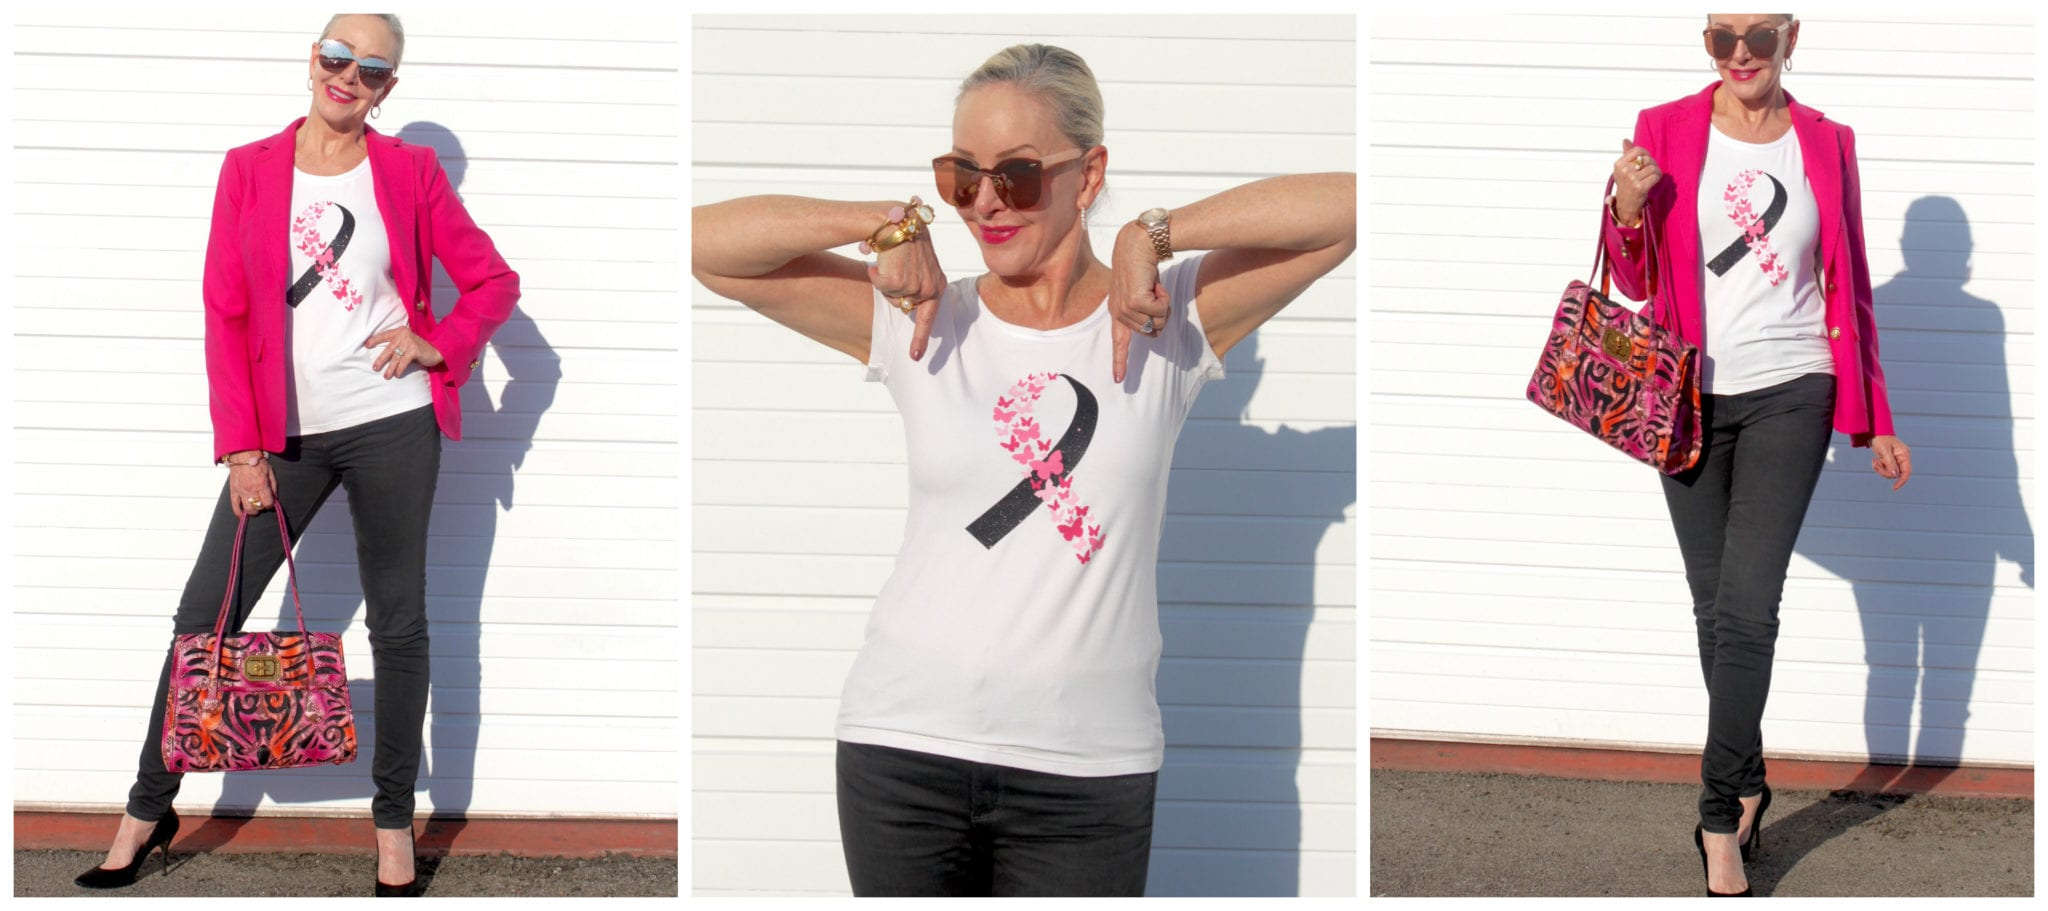 Breast Cancer Awareness, Companies giving to back, pink month, October pink month, pink products